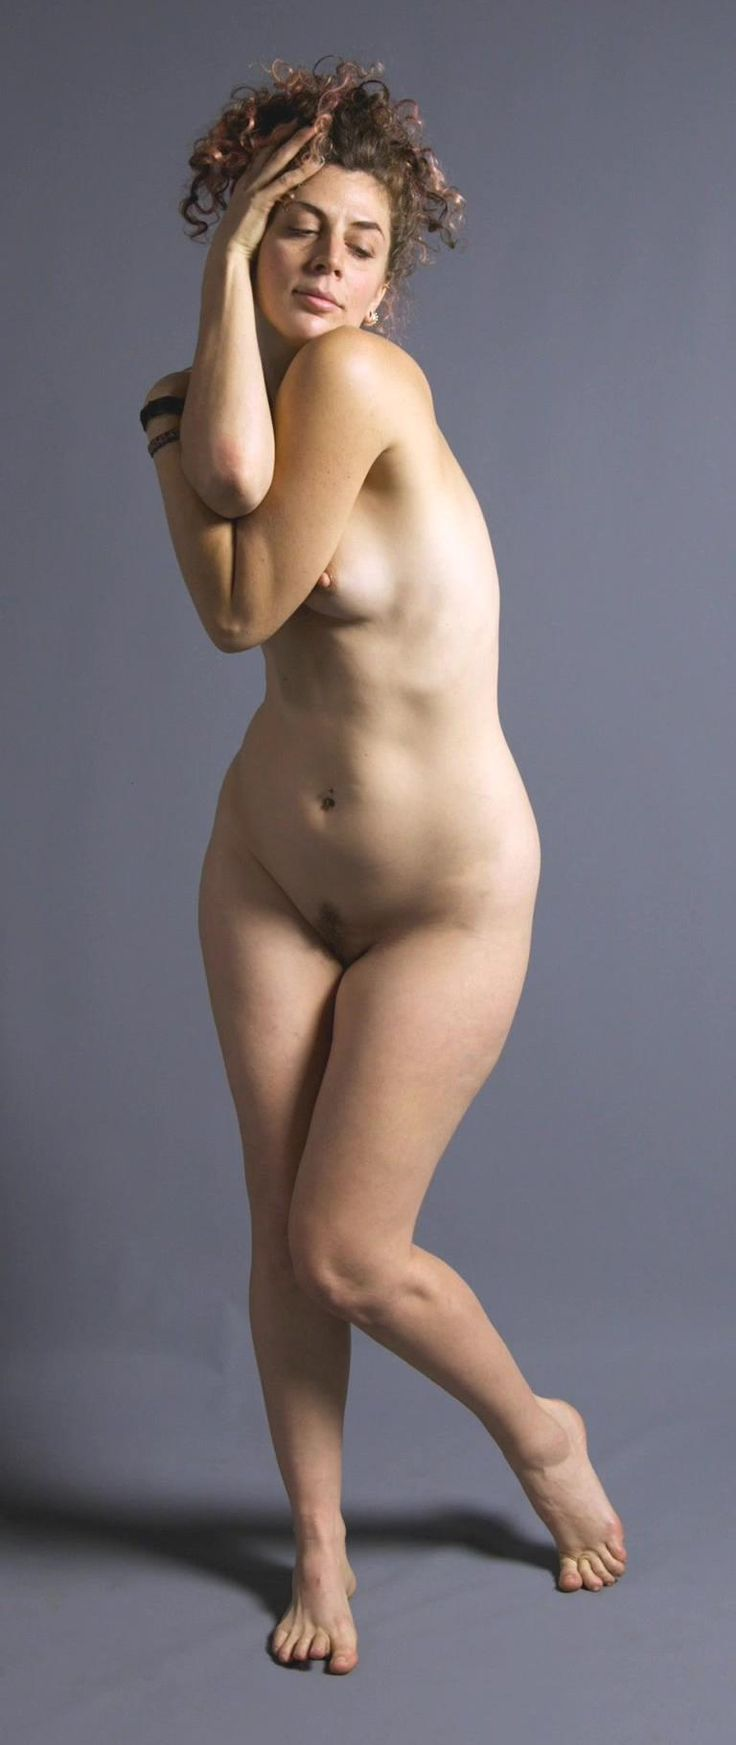 nude women anatomy models